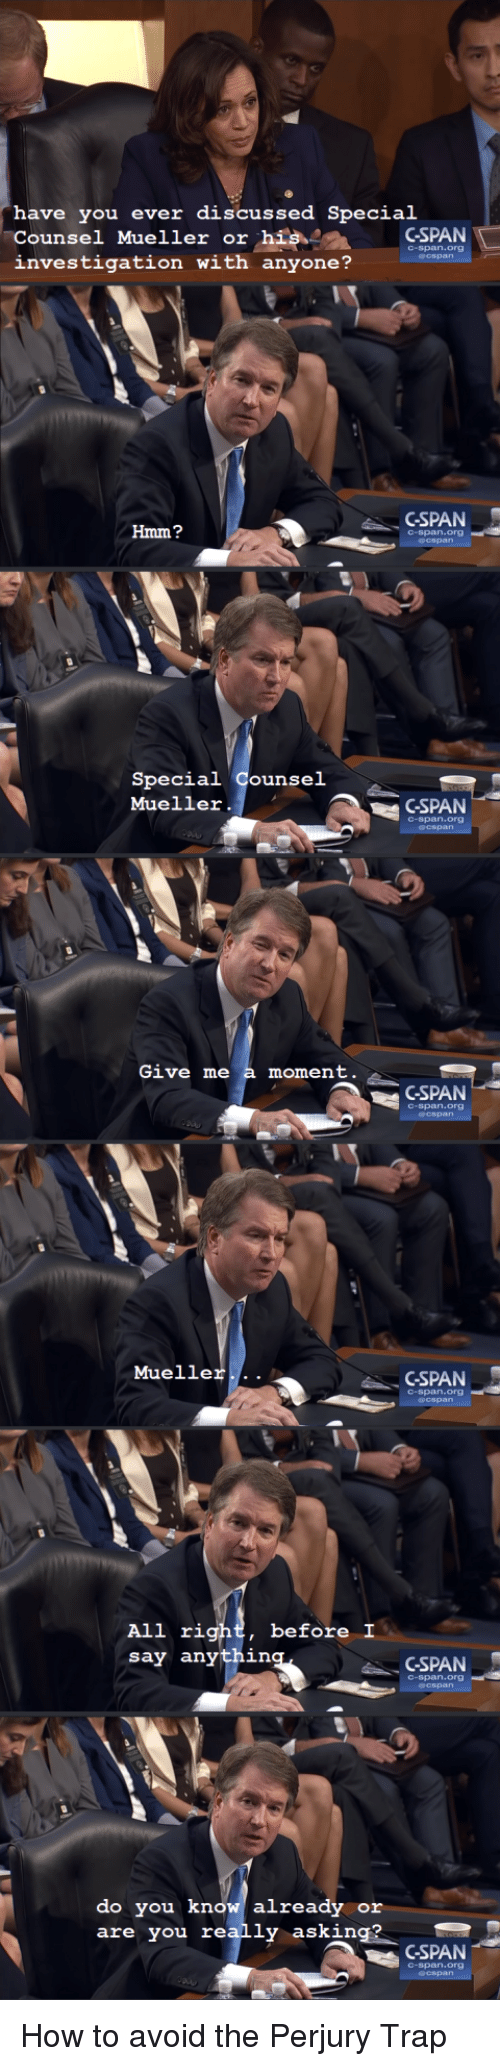 rig: have you ever discussed Special  Counsel Mueller or hisCSPAN  investigation with anyone?  C-span.org  GSPAN  Hmm?  C-span.org  Special Counsel  Mueller.  GSPAN  C-span.org  Give me a moment  GSPAN  C-span.org  Mueller...  GSPAN  C-span.org  before I  All rig  say anythin  CSPAN  C-span.org  do you know already or  are you really asking?  CSPAN  C-span.org How to avoid the Perjury Trap